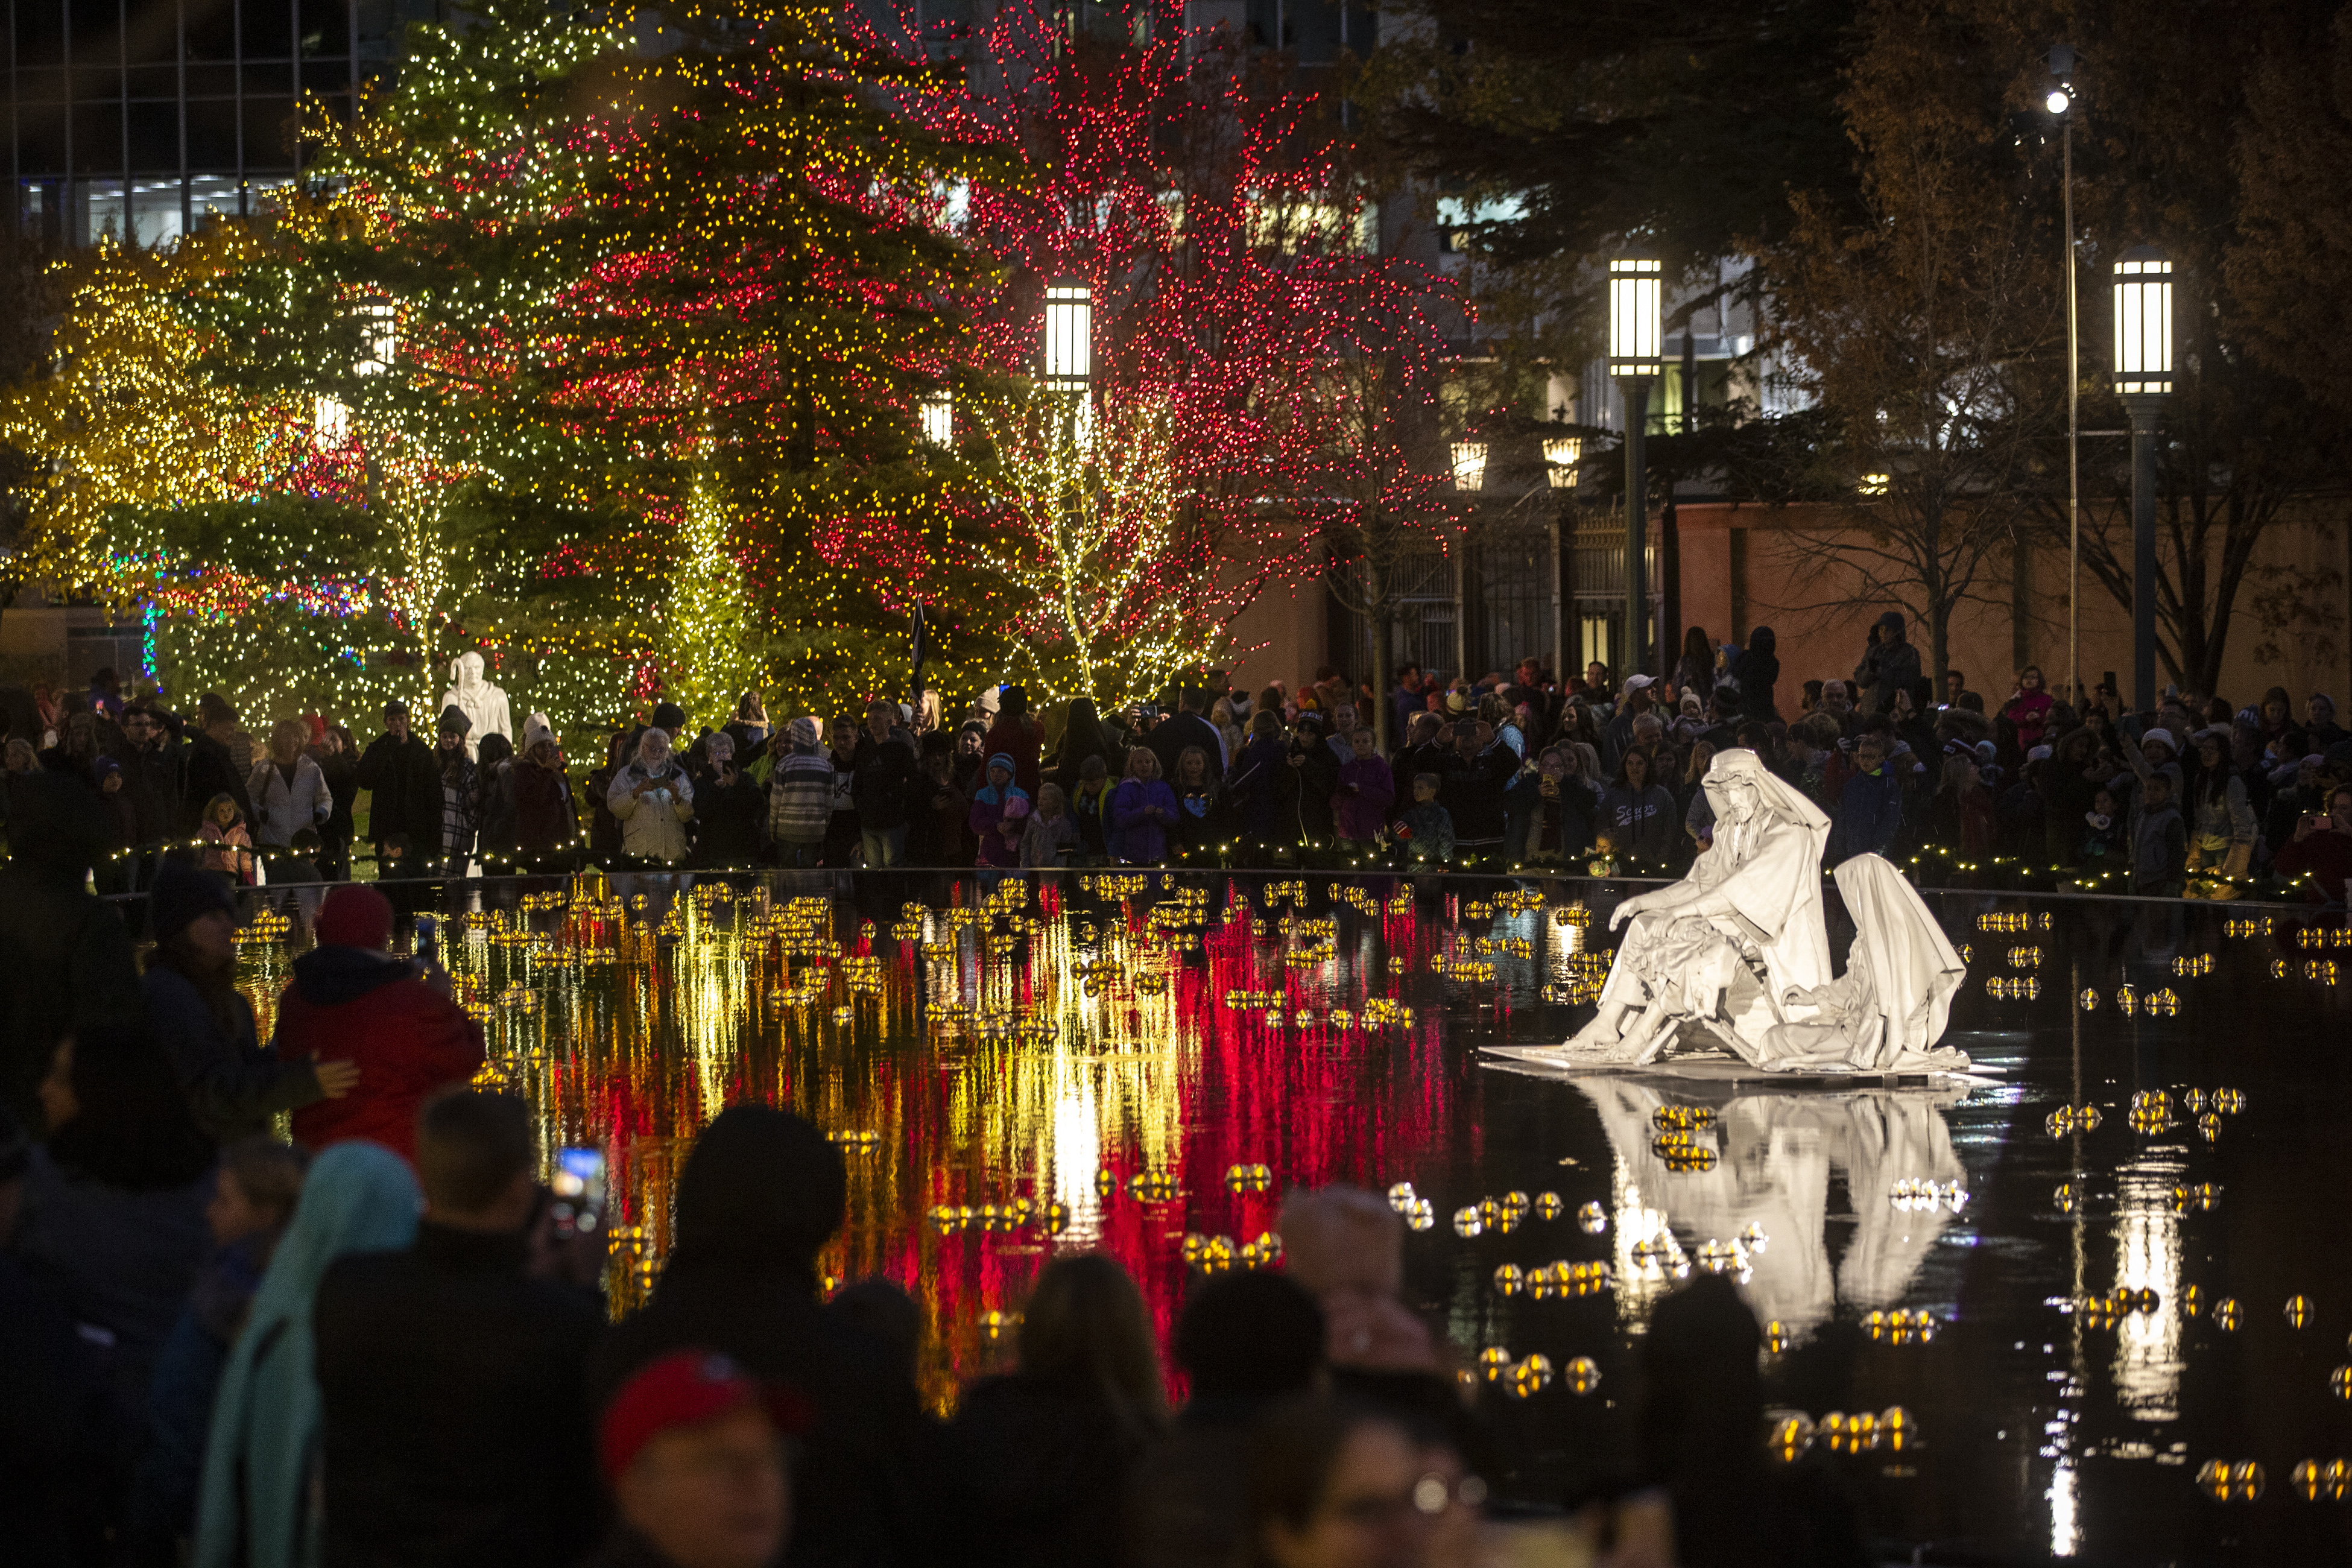 Thousands take in the colors as the lights are turned on at Temple Square in Salt Lake City on Friday, Nov. 23, 2018.